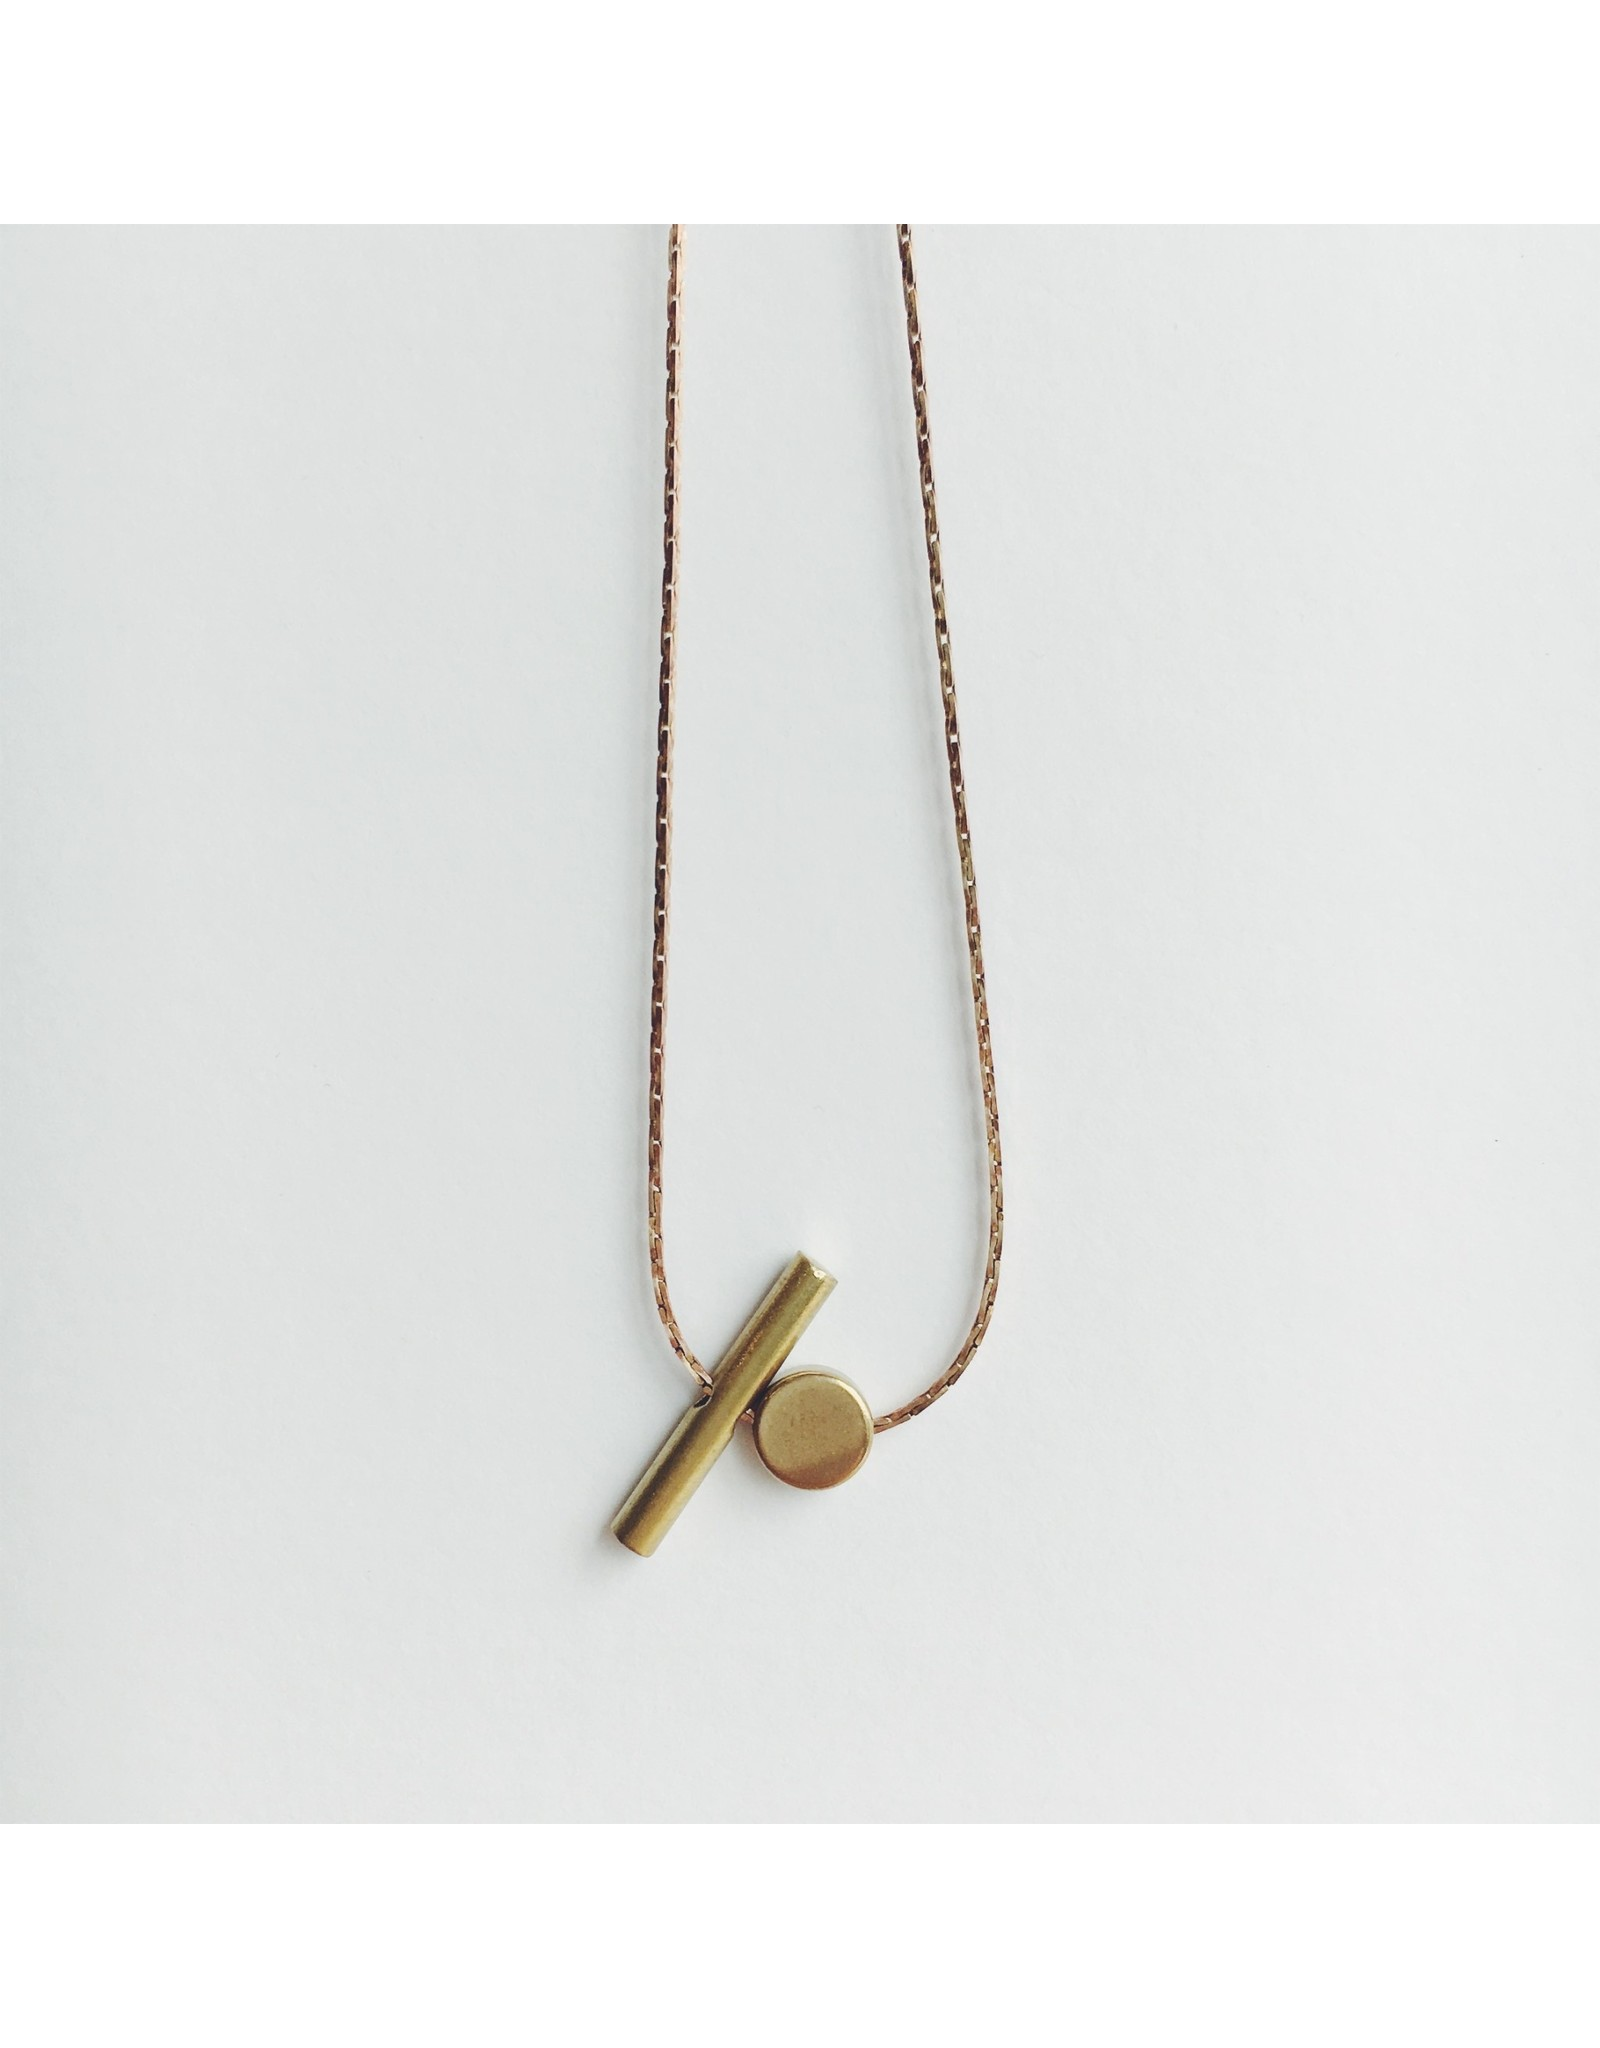 Brass Pill and Cylindrical Bar Necklace